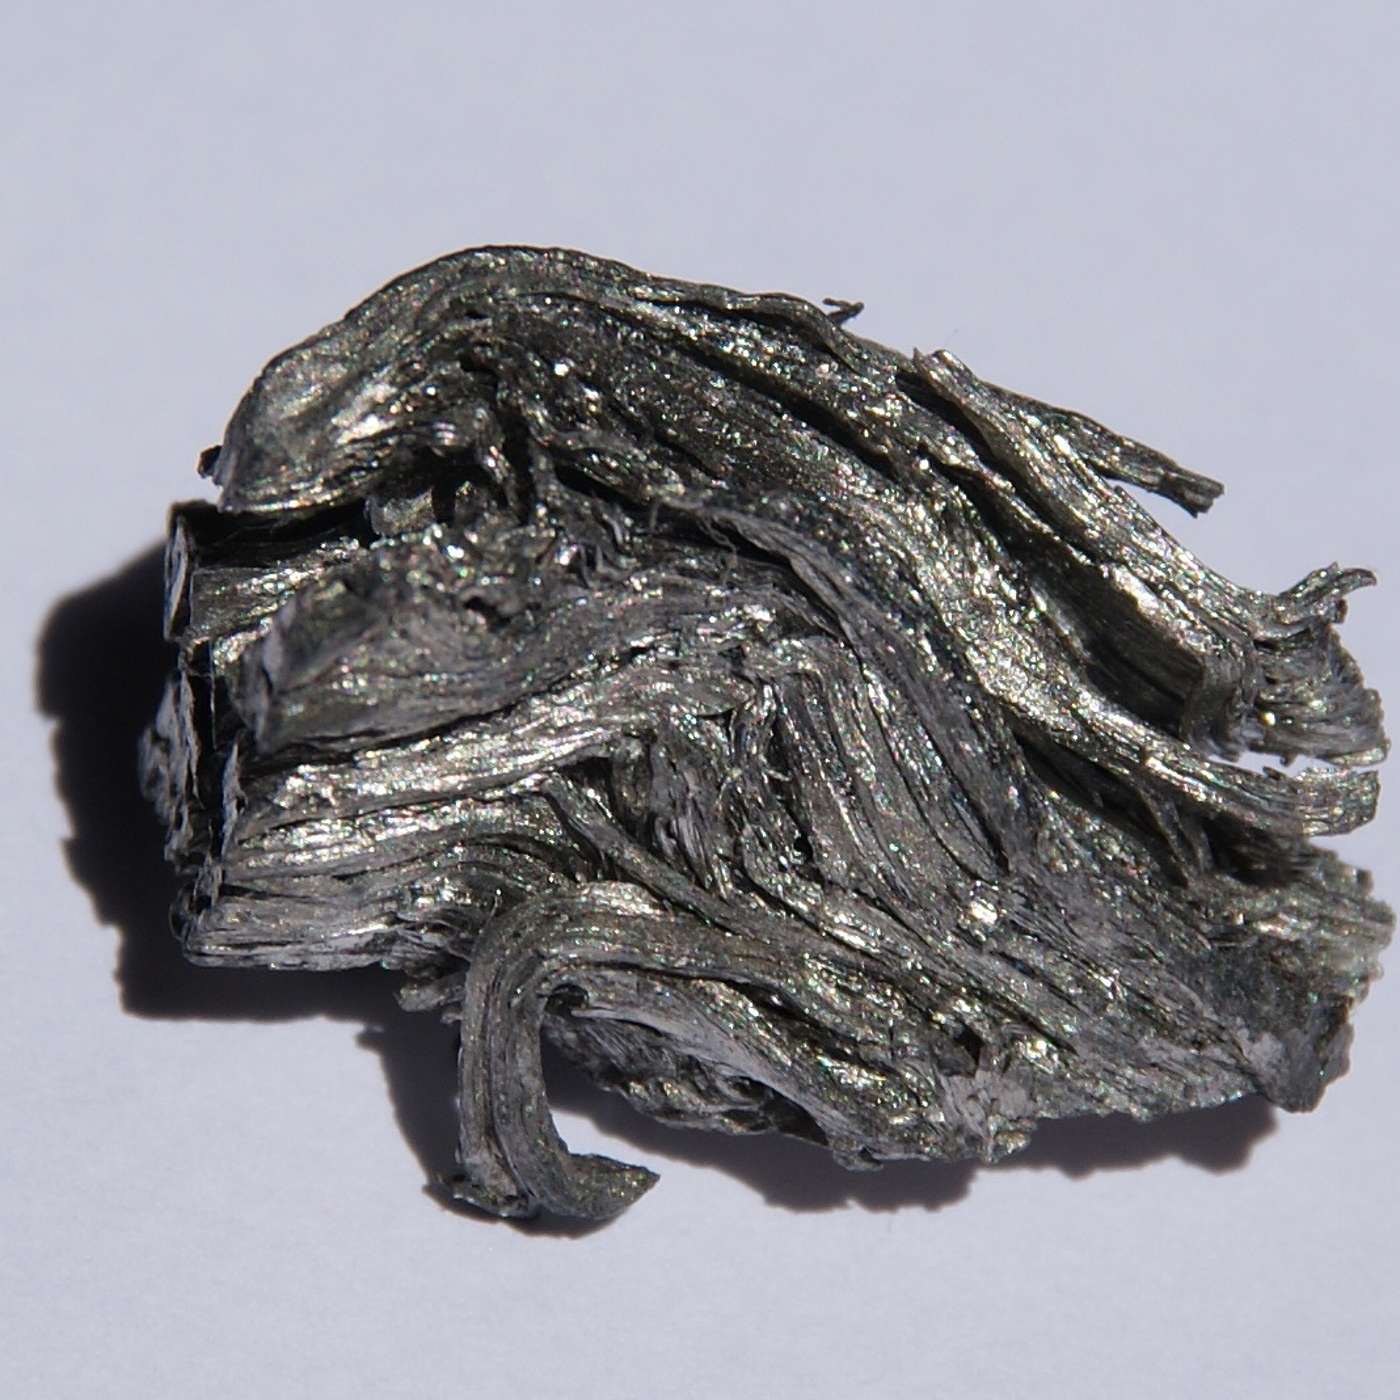 L'holmium fait partie des lanthanides. © Hi-Res Images of Chemical Elements, Wikimedia Commons, CC by 3.0